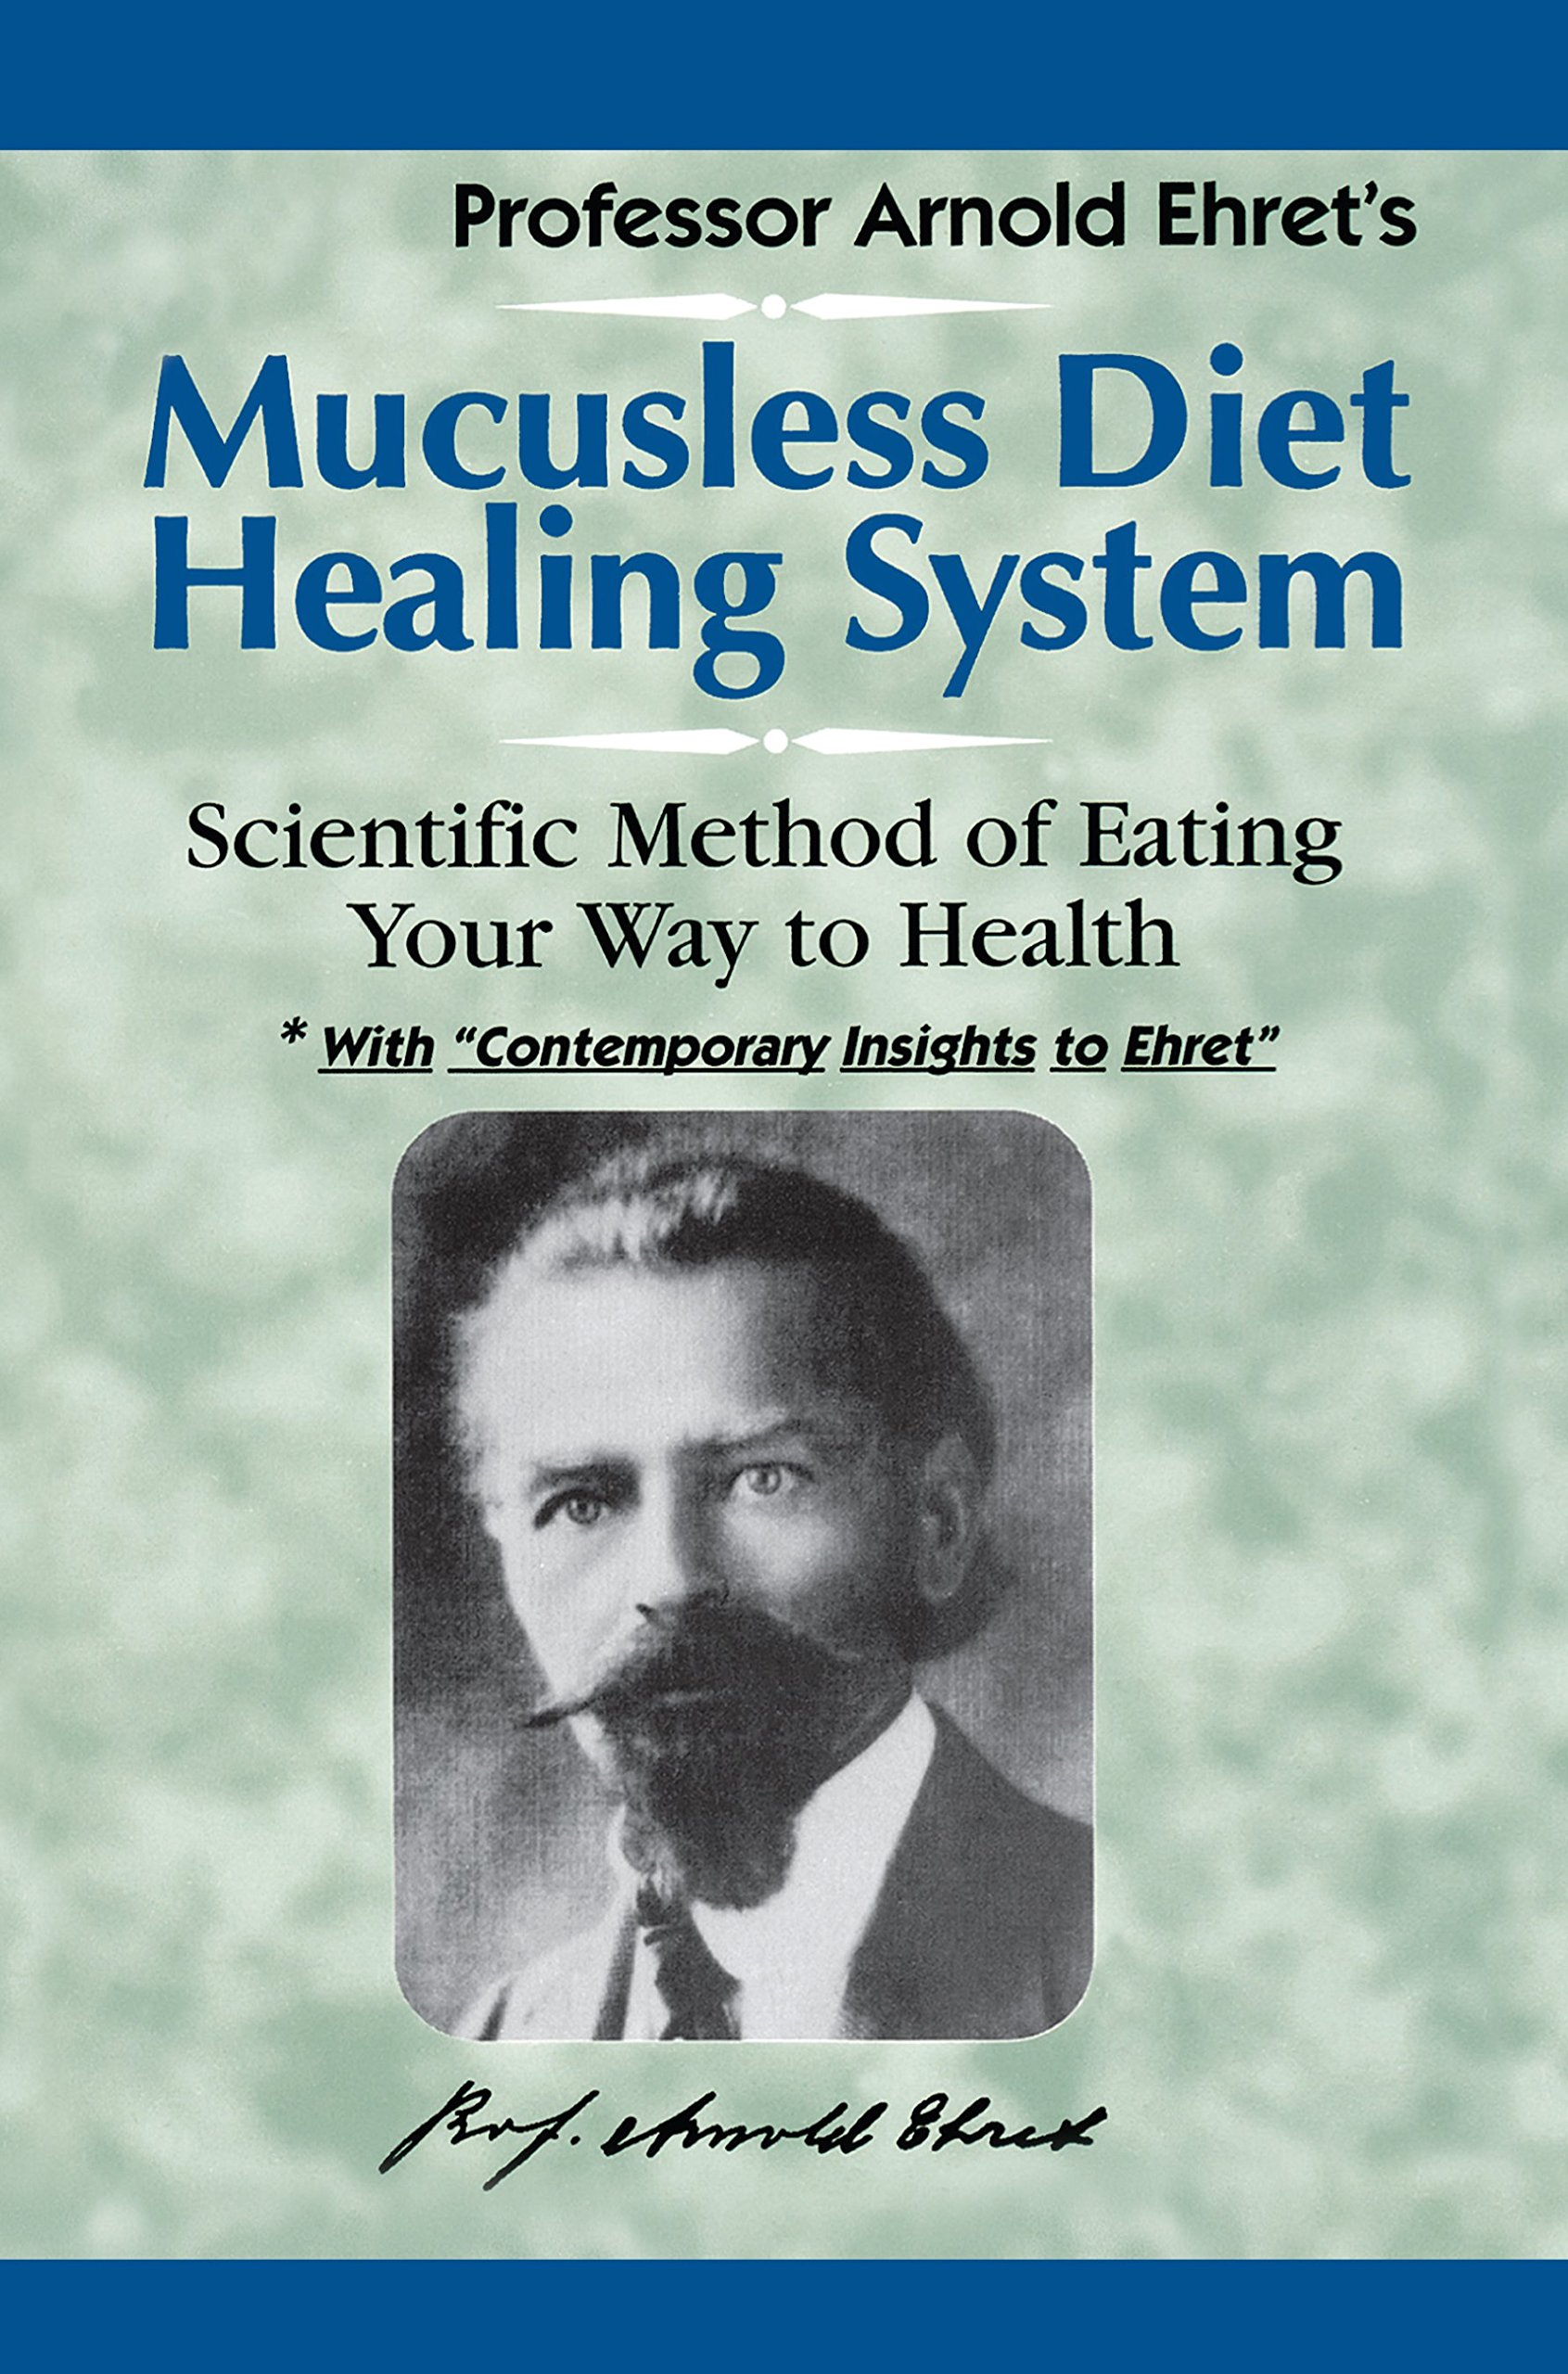 Mucusless Diet Healing System  Scientific Method Of Eating Your Way To Health